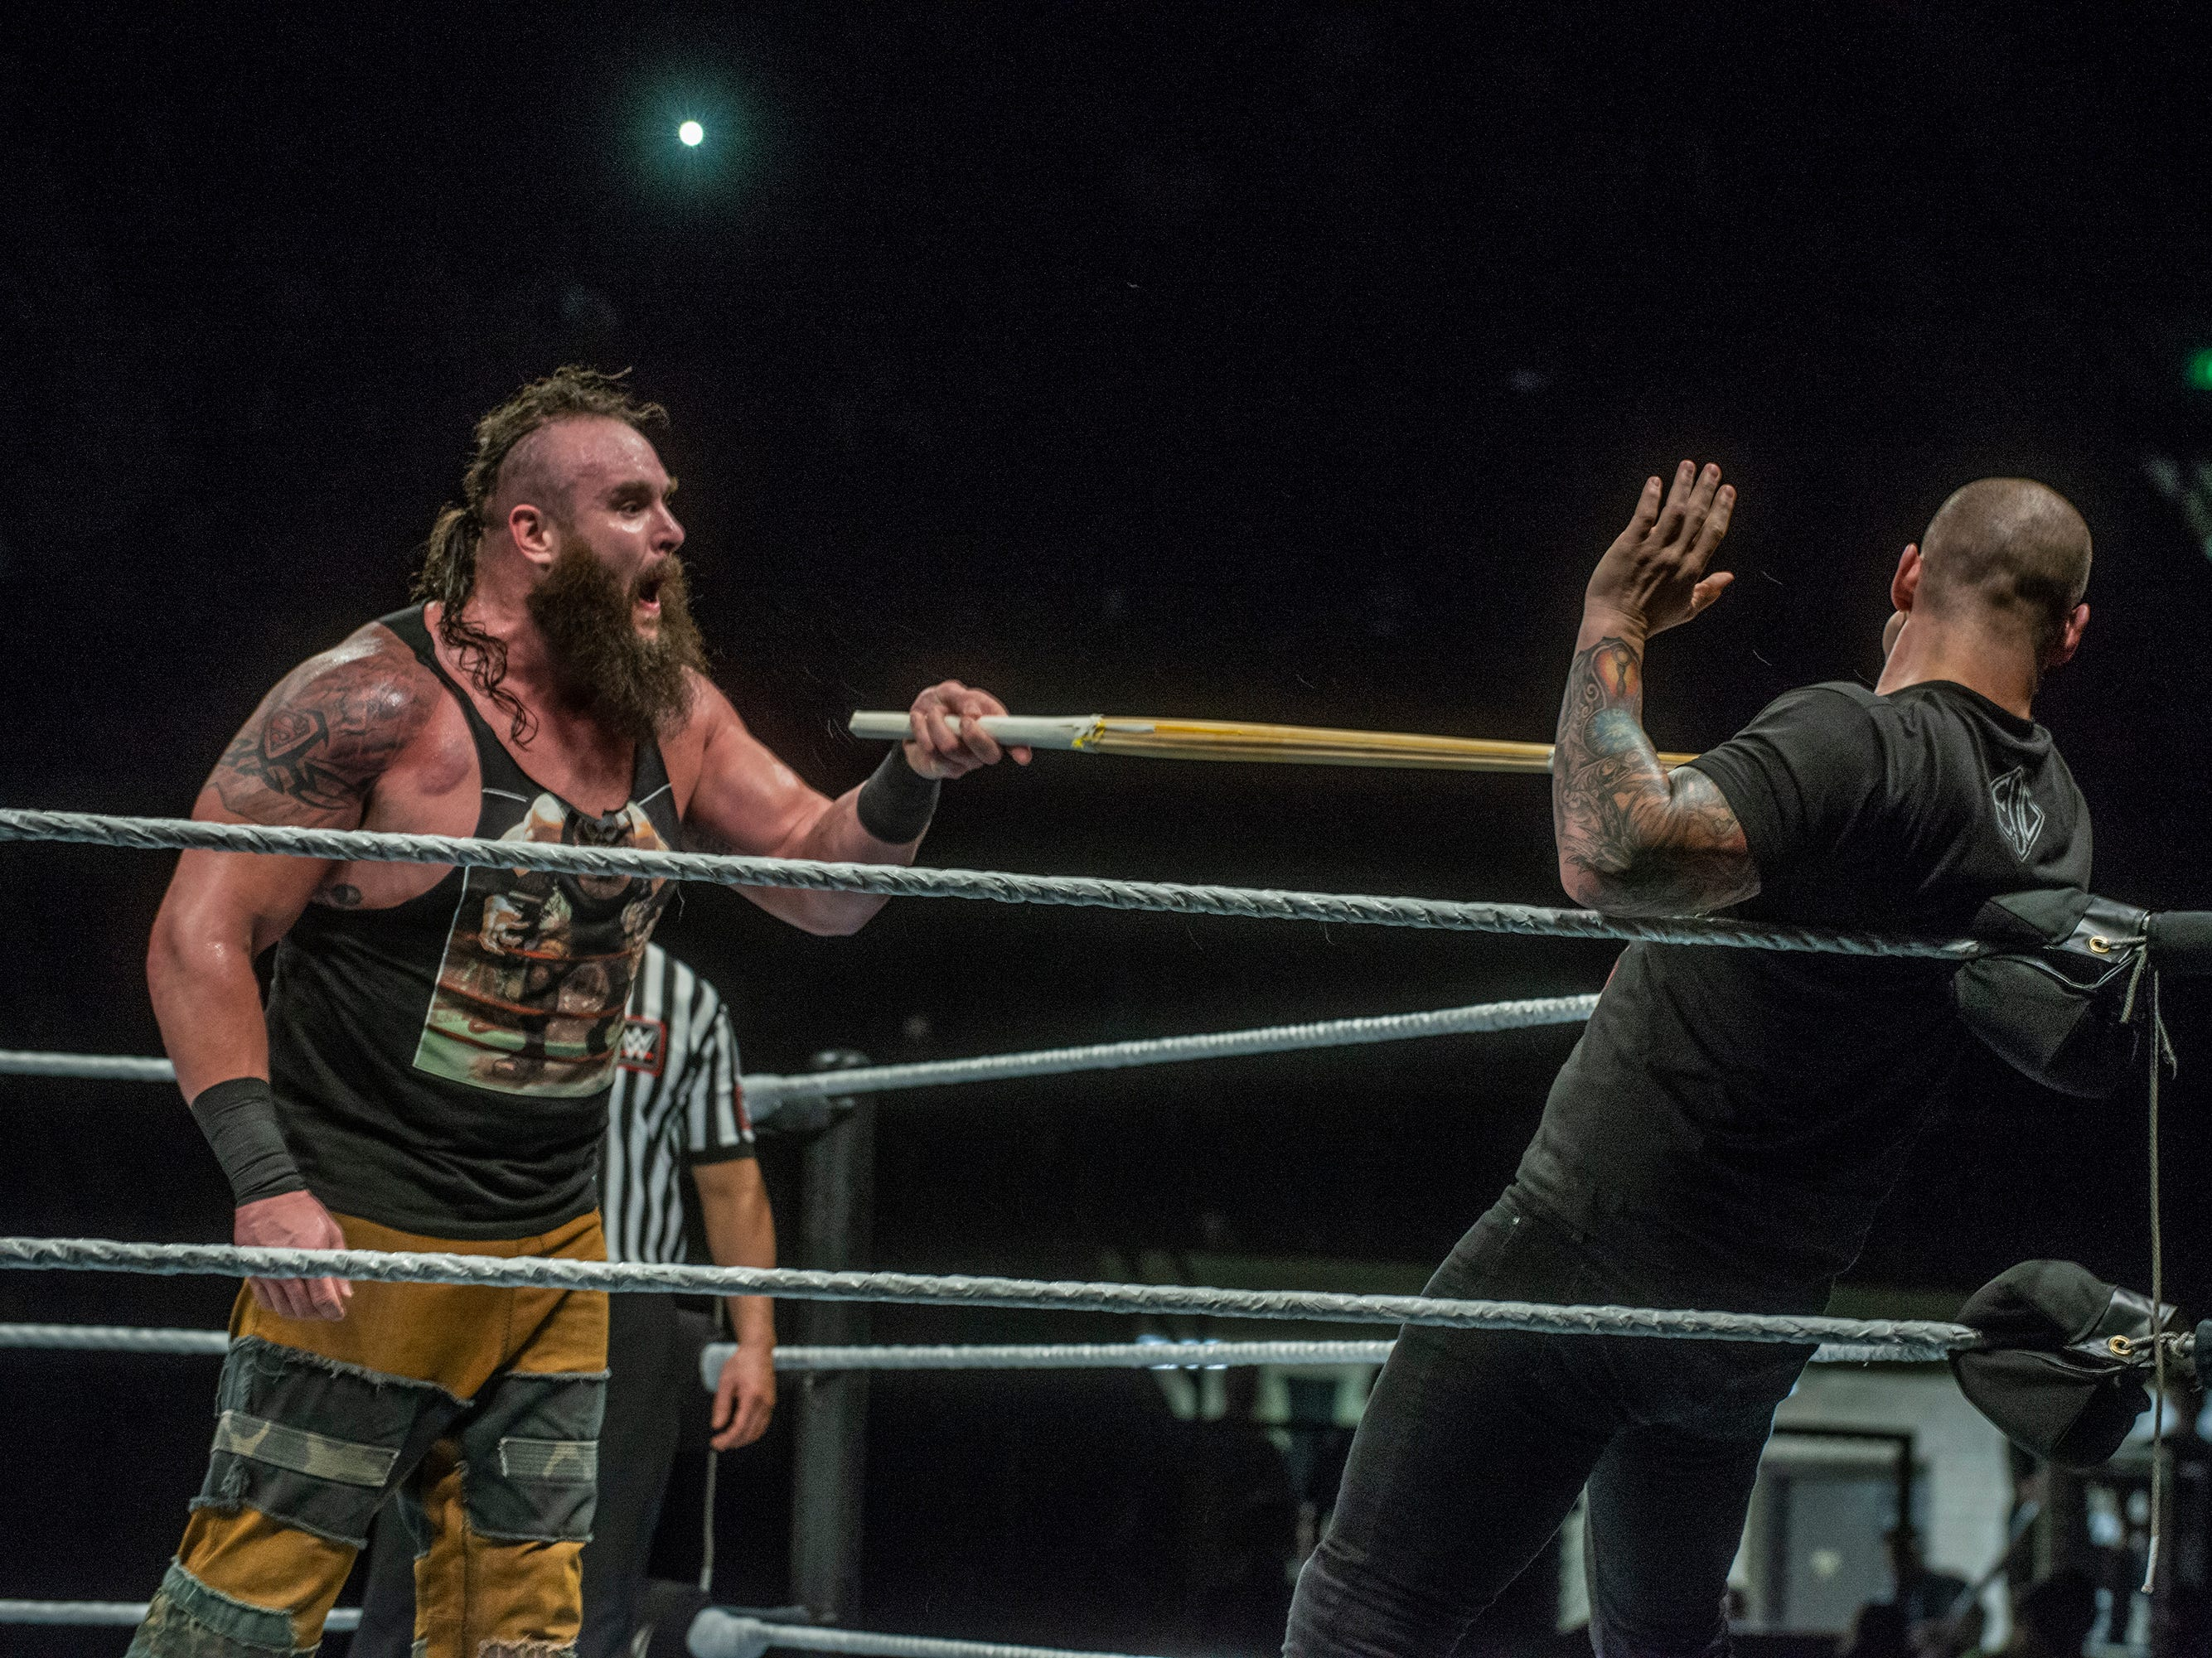 Braun Strowman puts Baron Corbin on the wrong end of a stick. The main event was a street fight between Baron Corbin and Braun Strowman, with lots of of chairs, sticks and tables. WWE Live Road to Wrestlemania came to Garrett Coliseum in Montgomery on Sunday, Feb. 24, 2019.